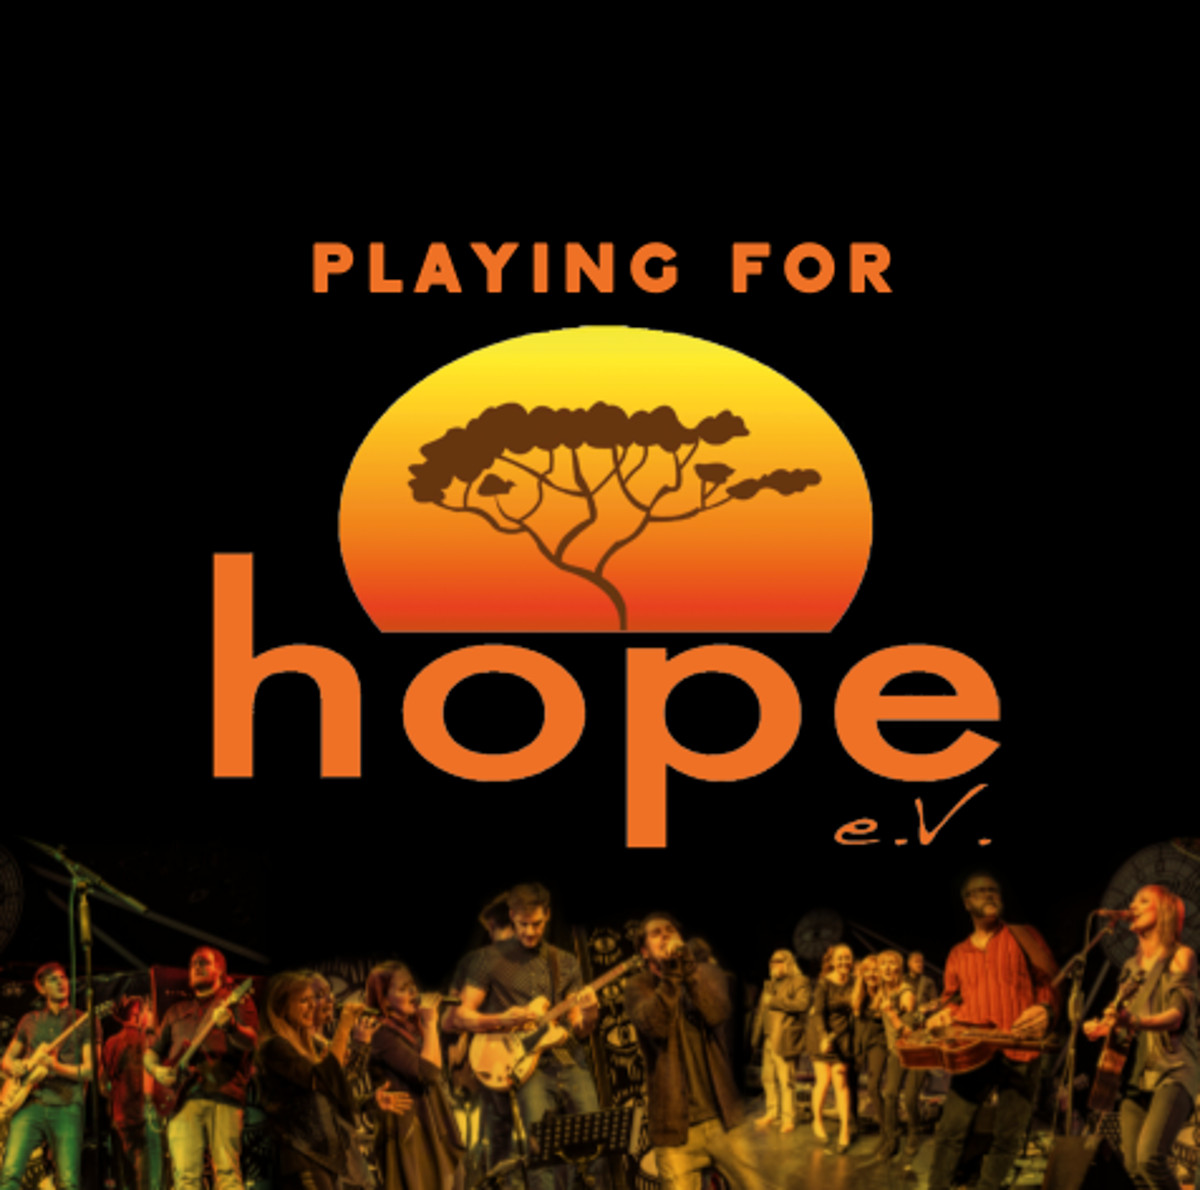 Playing for hope - Das Live Album